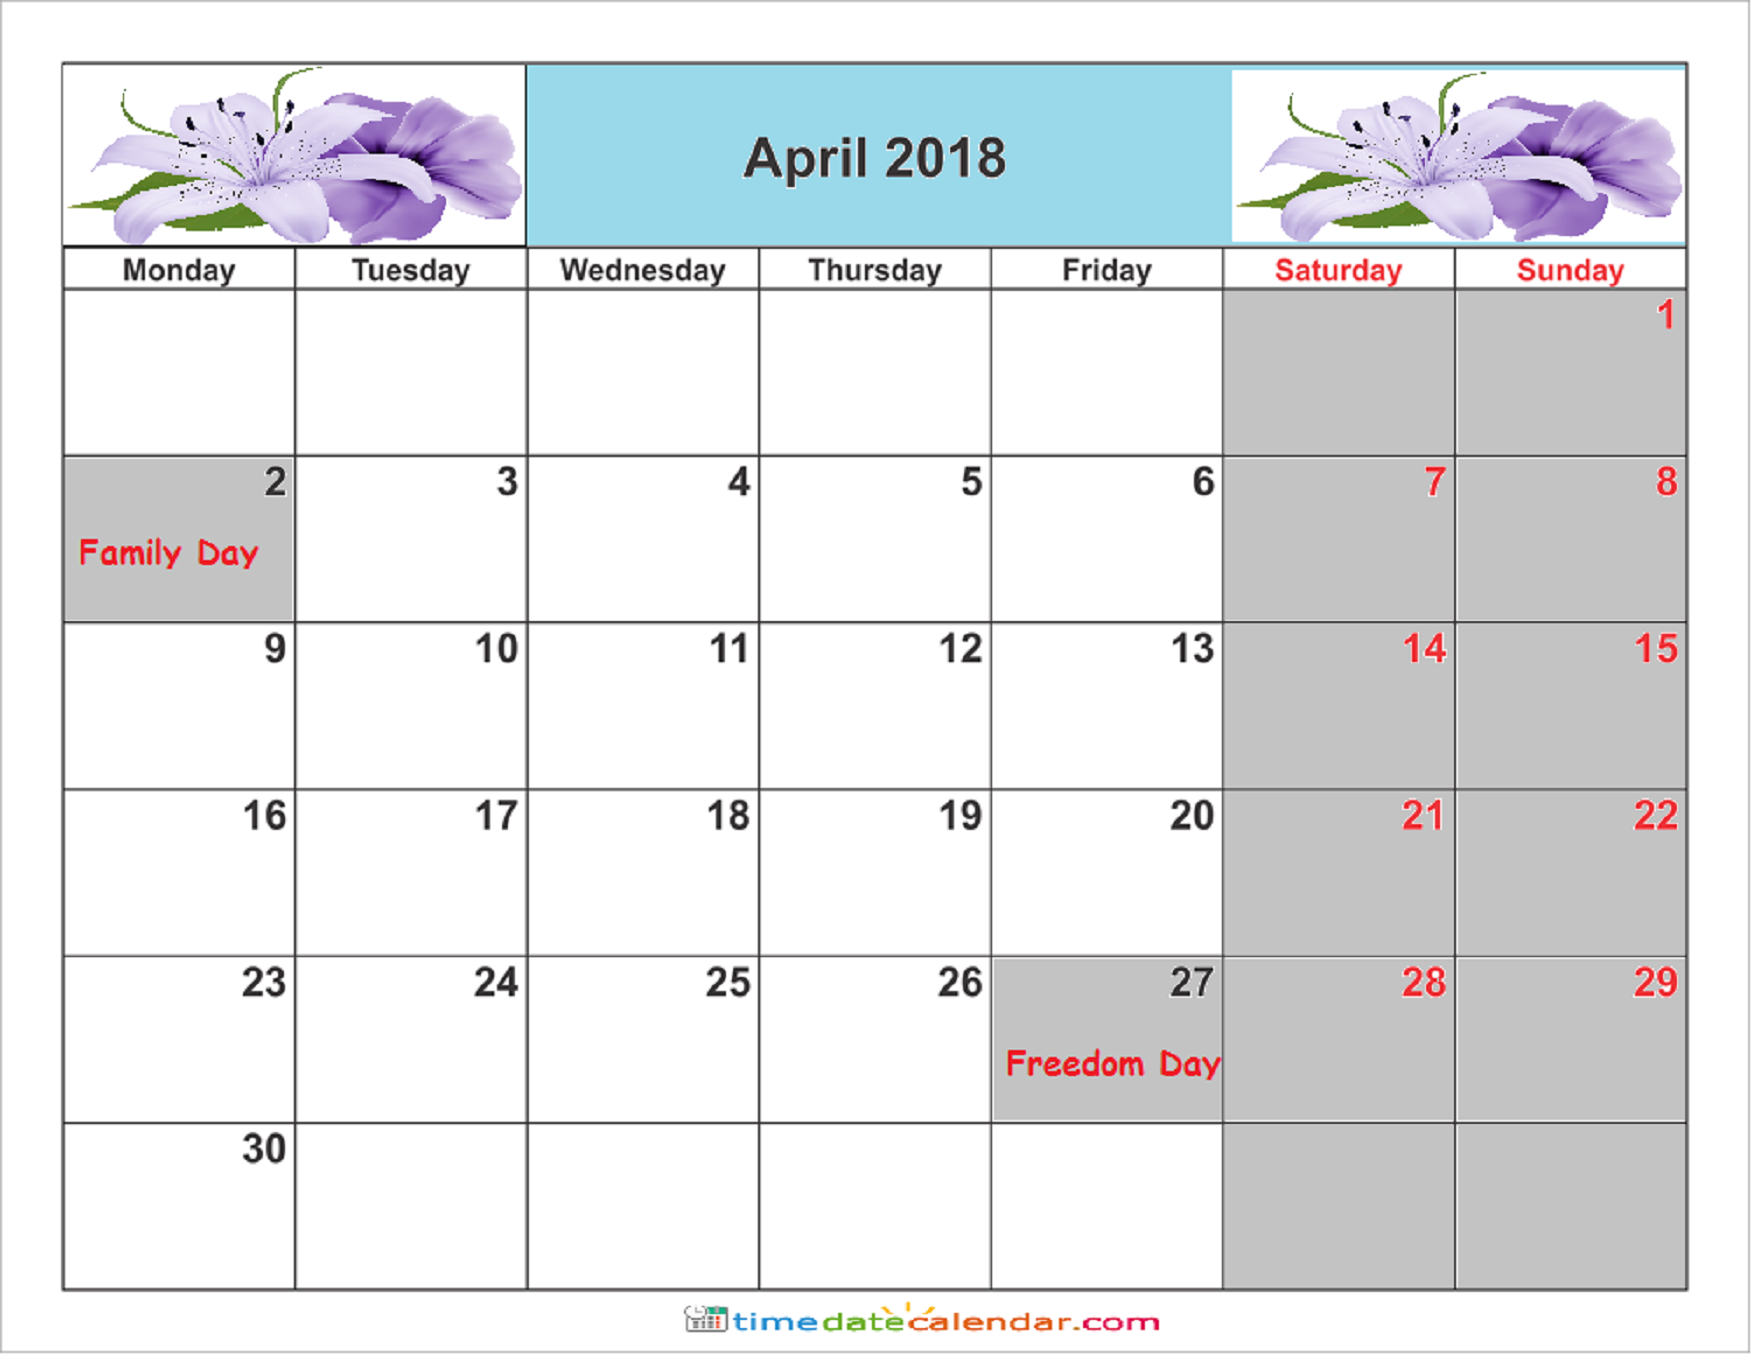 Calendar South Africa Printable : April calendar quotes images pictures wishes